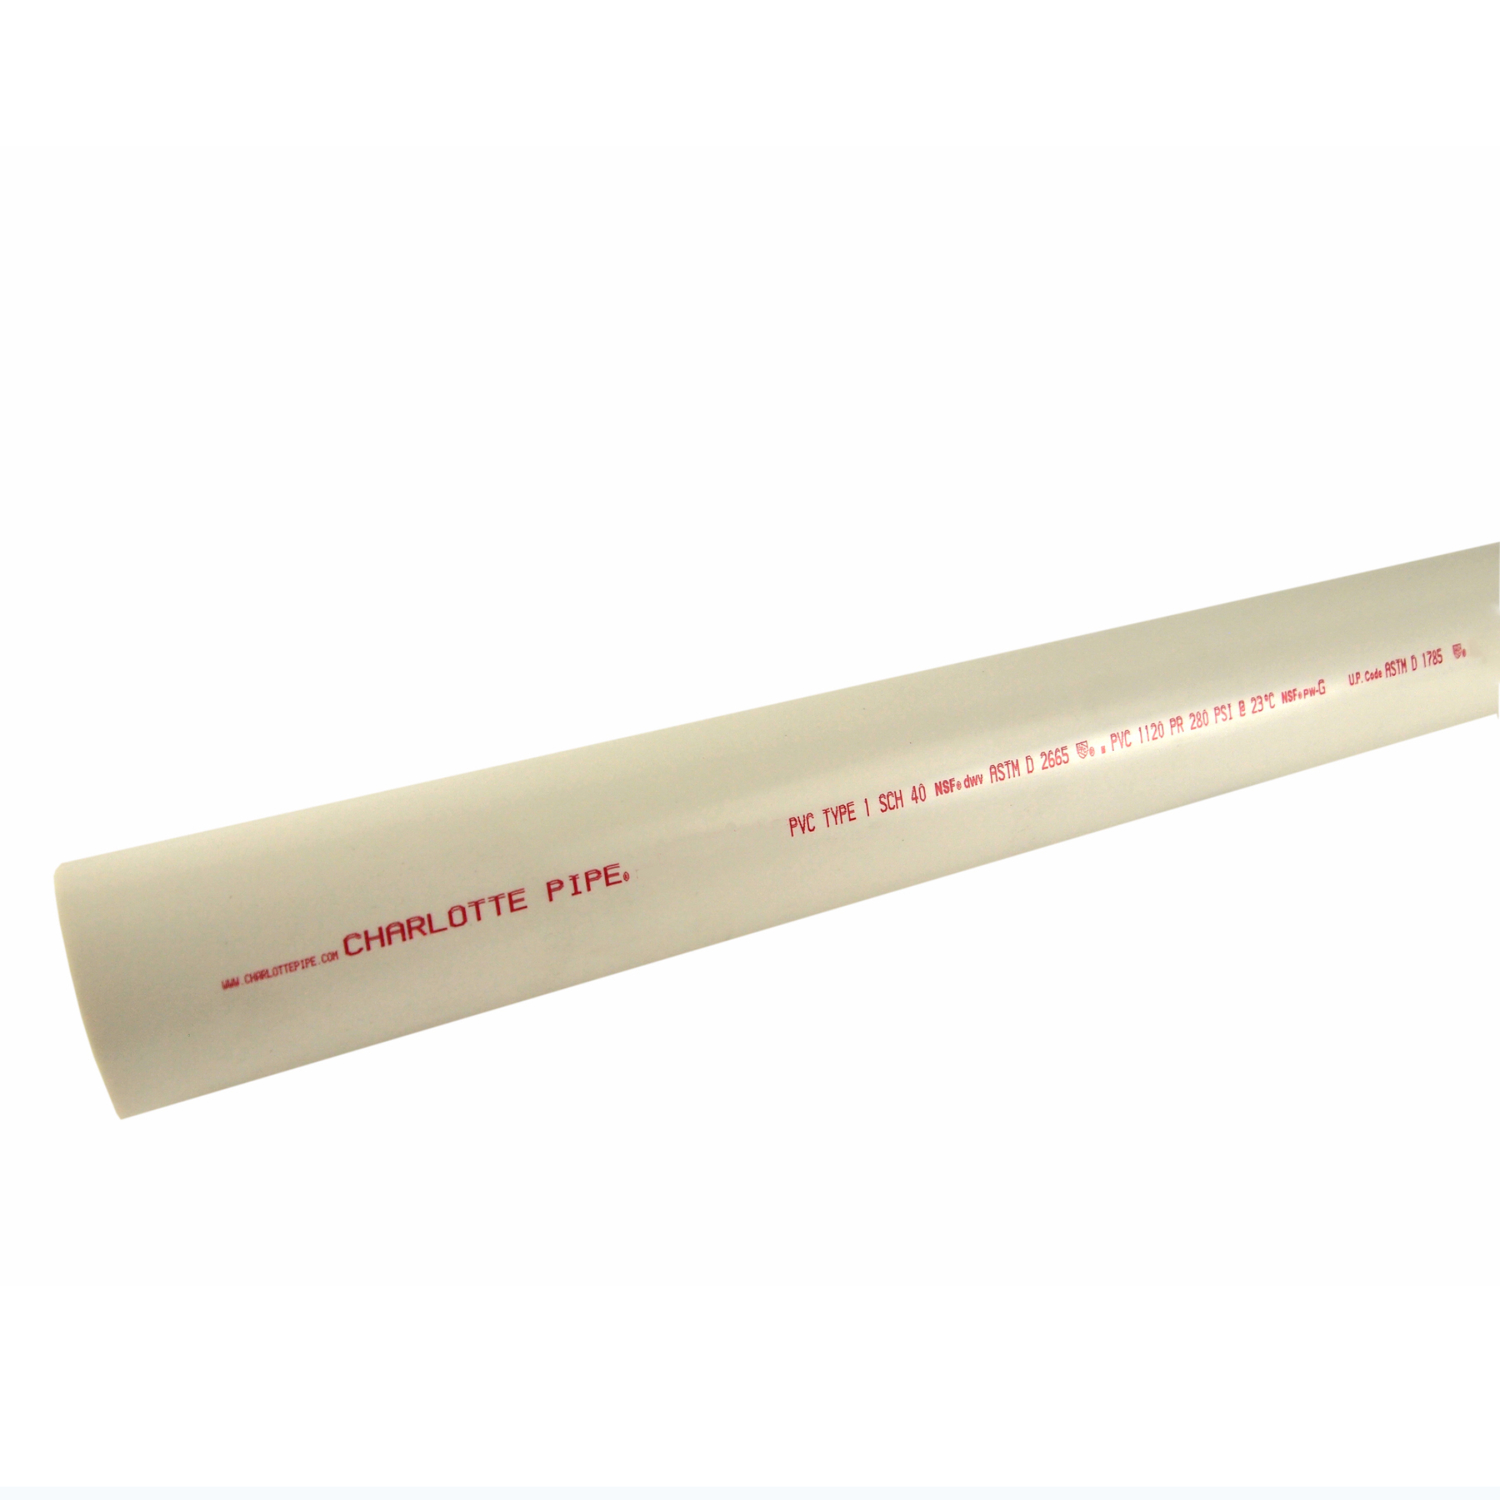 Charlotte Pipe  PVC Pipe  1-1/4 in. Dia. x 10 ft. L Plain End  Schedule 40  370 psi